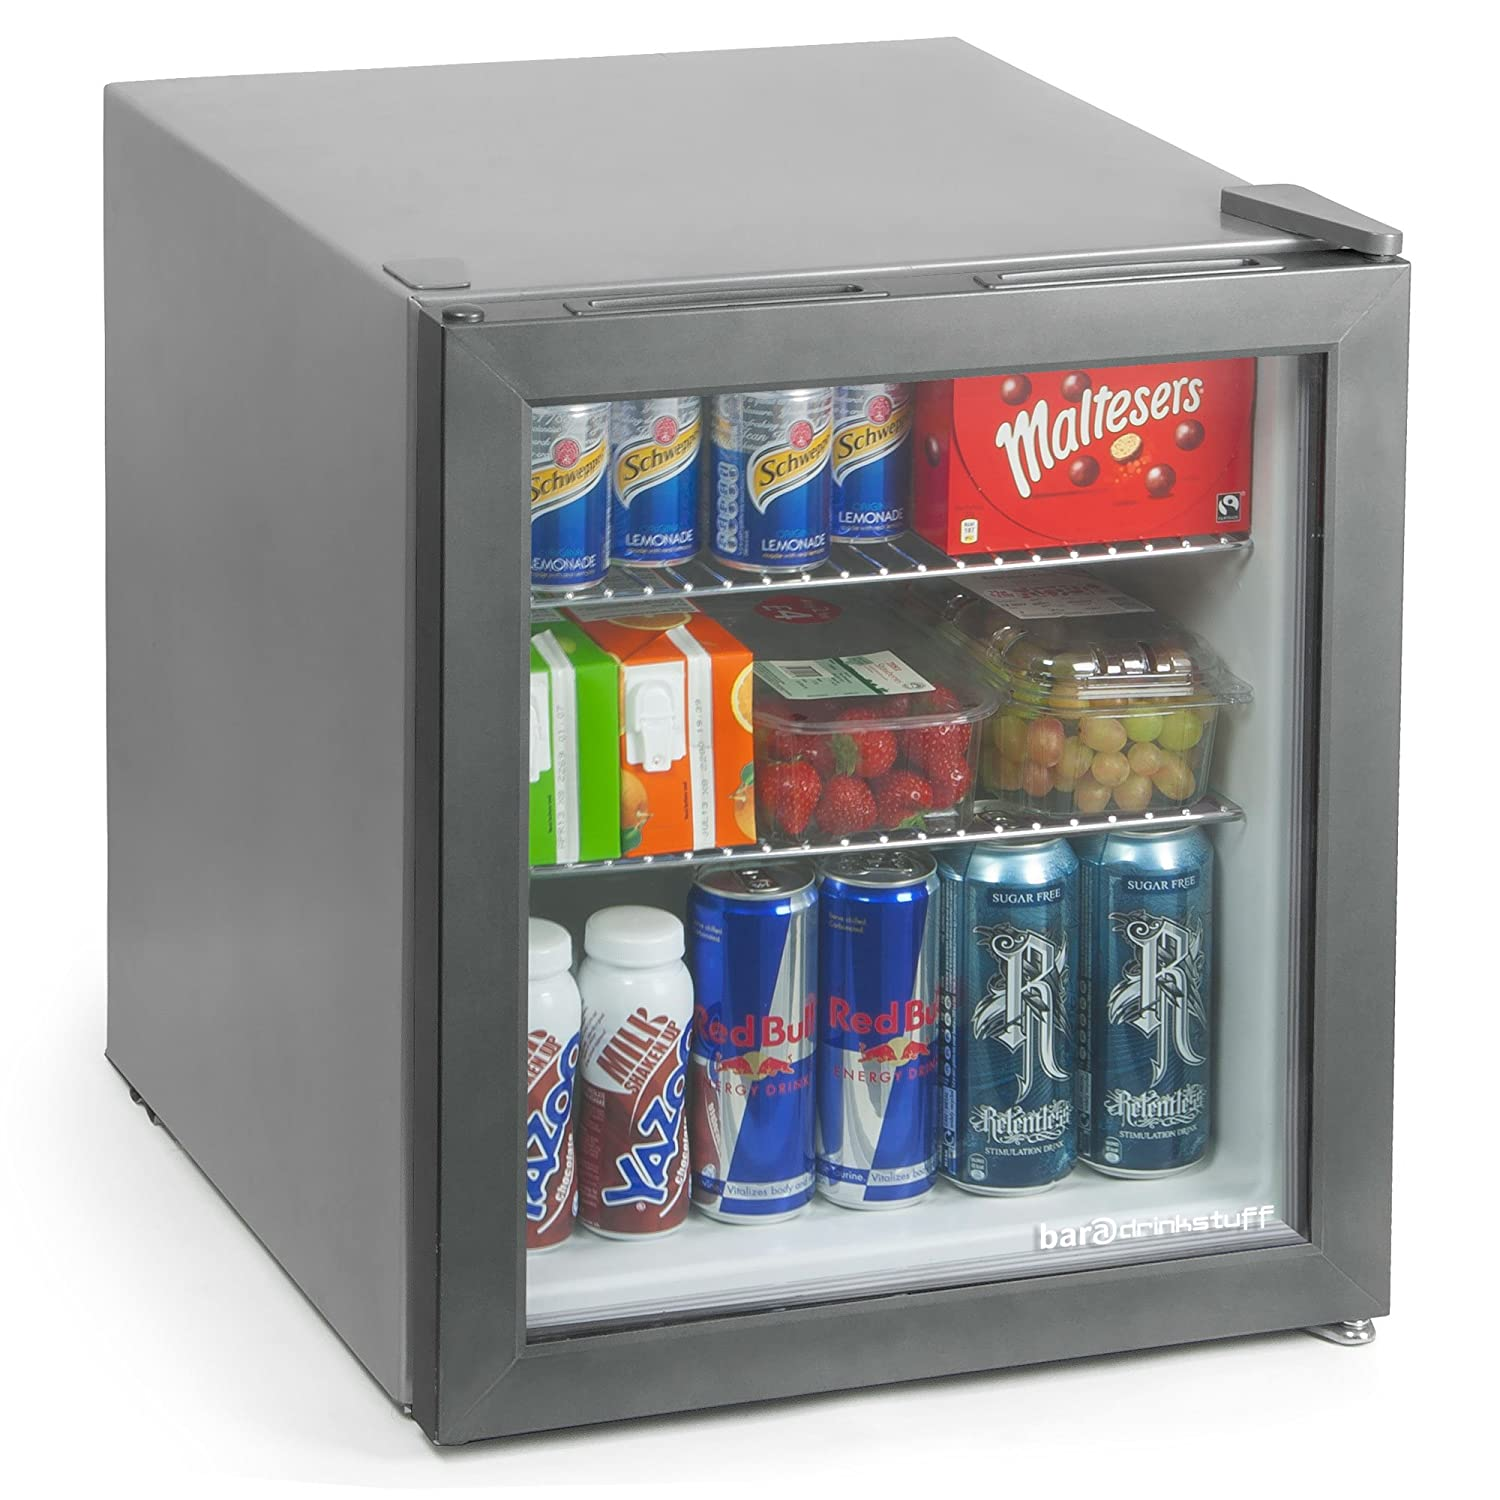 bar@drinkstuff Frostbite Mini Fridge Silver - 49ltr Compact Refrigerator Holds 45 x 330ml Cans| A+ Energy Rating